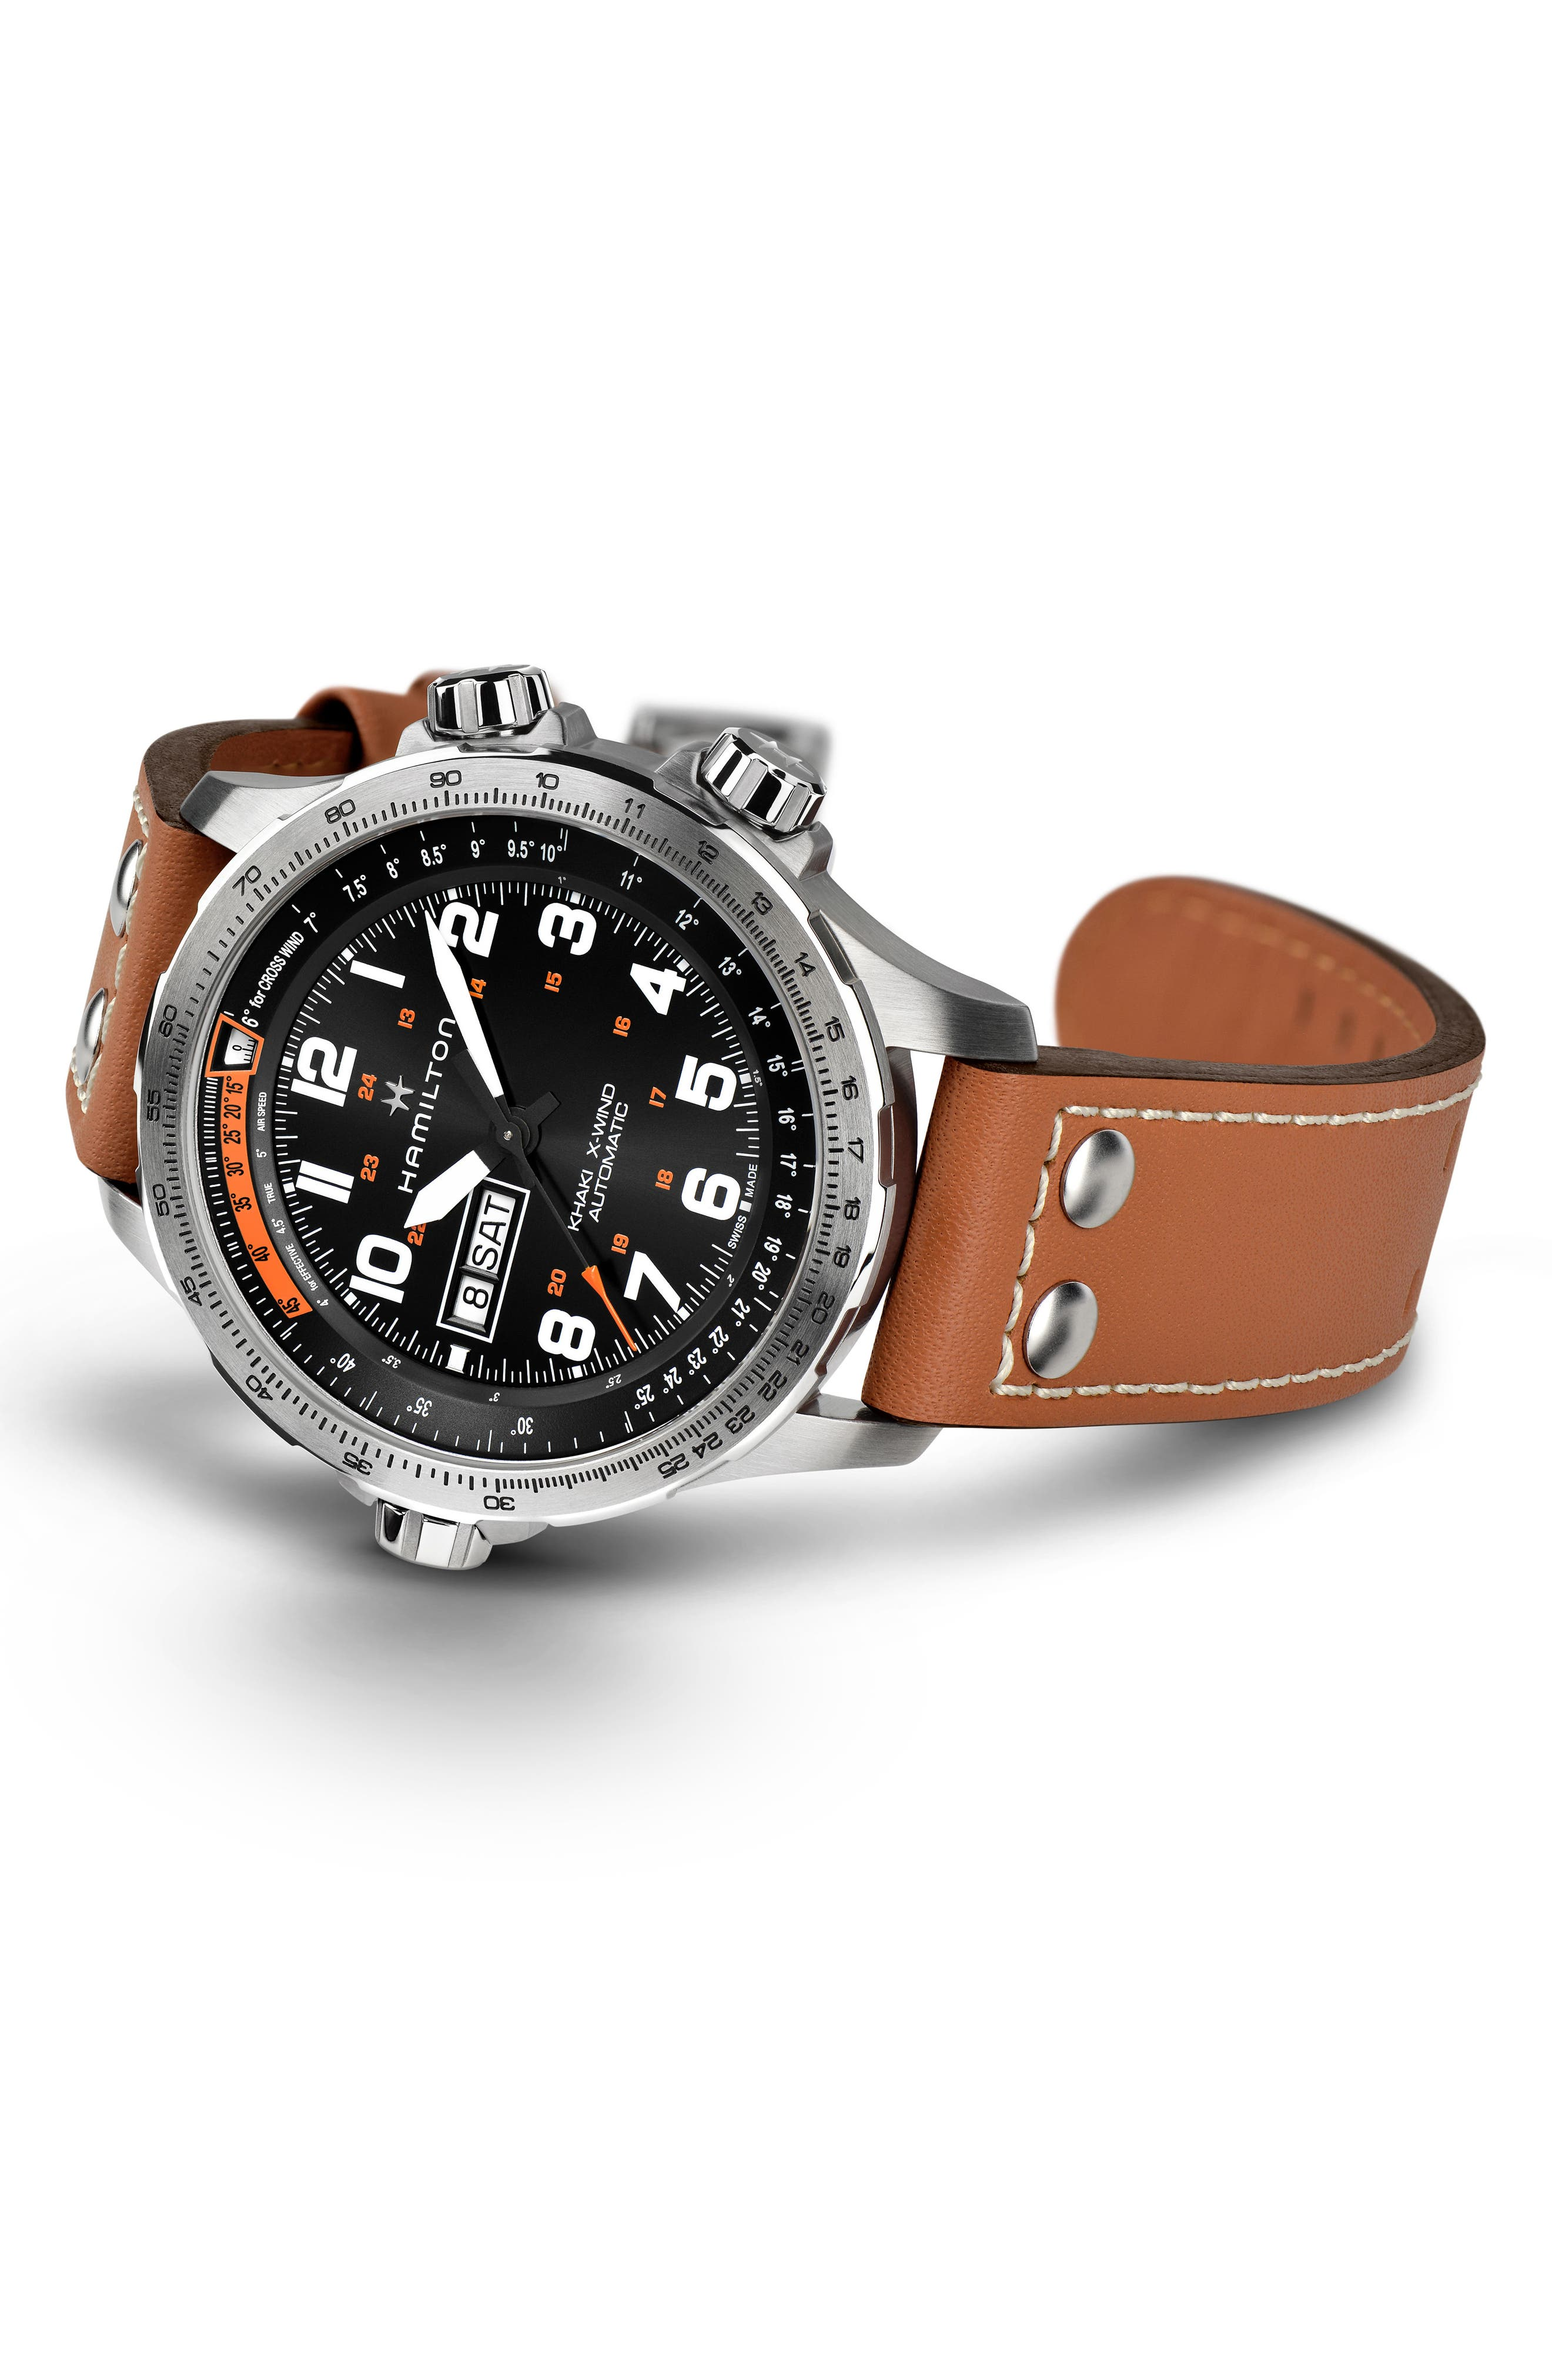 Khaki X-Wind Automatic Chronograph Leather Strap Watch, 45mm,                             Alternate thumbnail 2, color,                             LIGHT BROWN/ BLACK/ SILVER